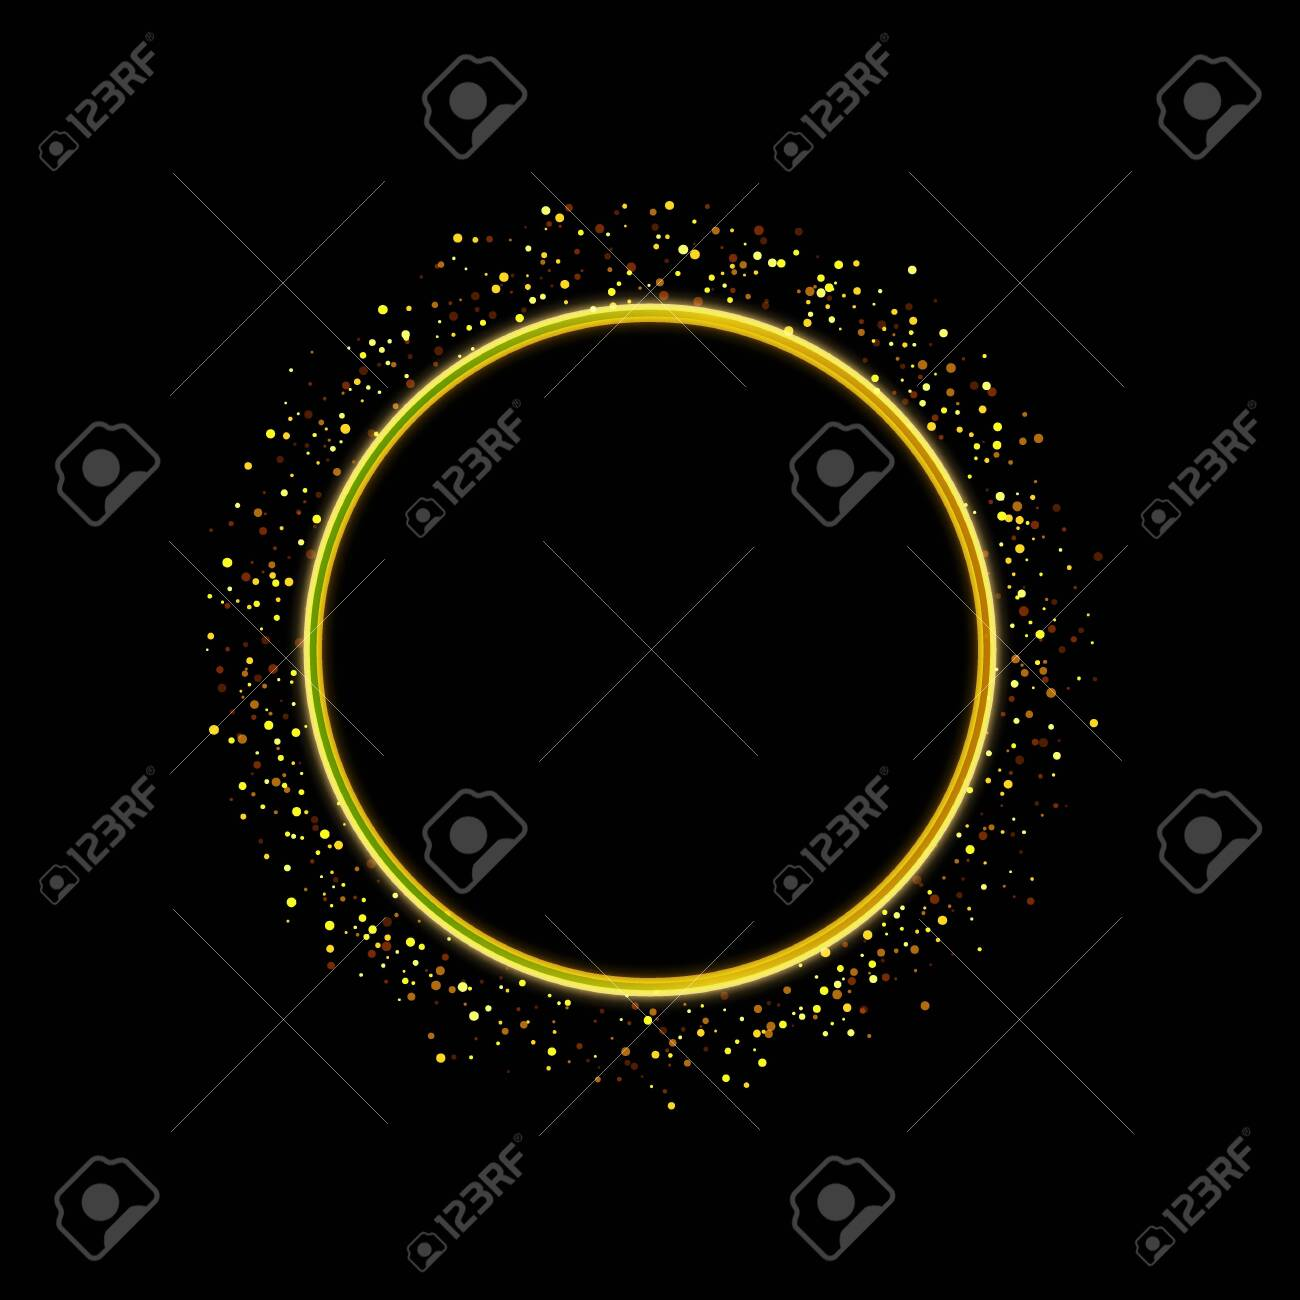 Festive golden sparkle background. Glitter border, circle frame. Black and gold vector dust. Great for christmas and birthday cards, valentine and wedding invitations, party posters. - 139589306